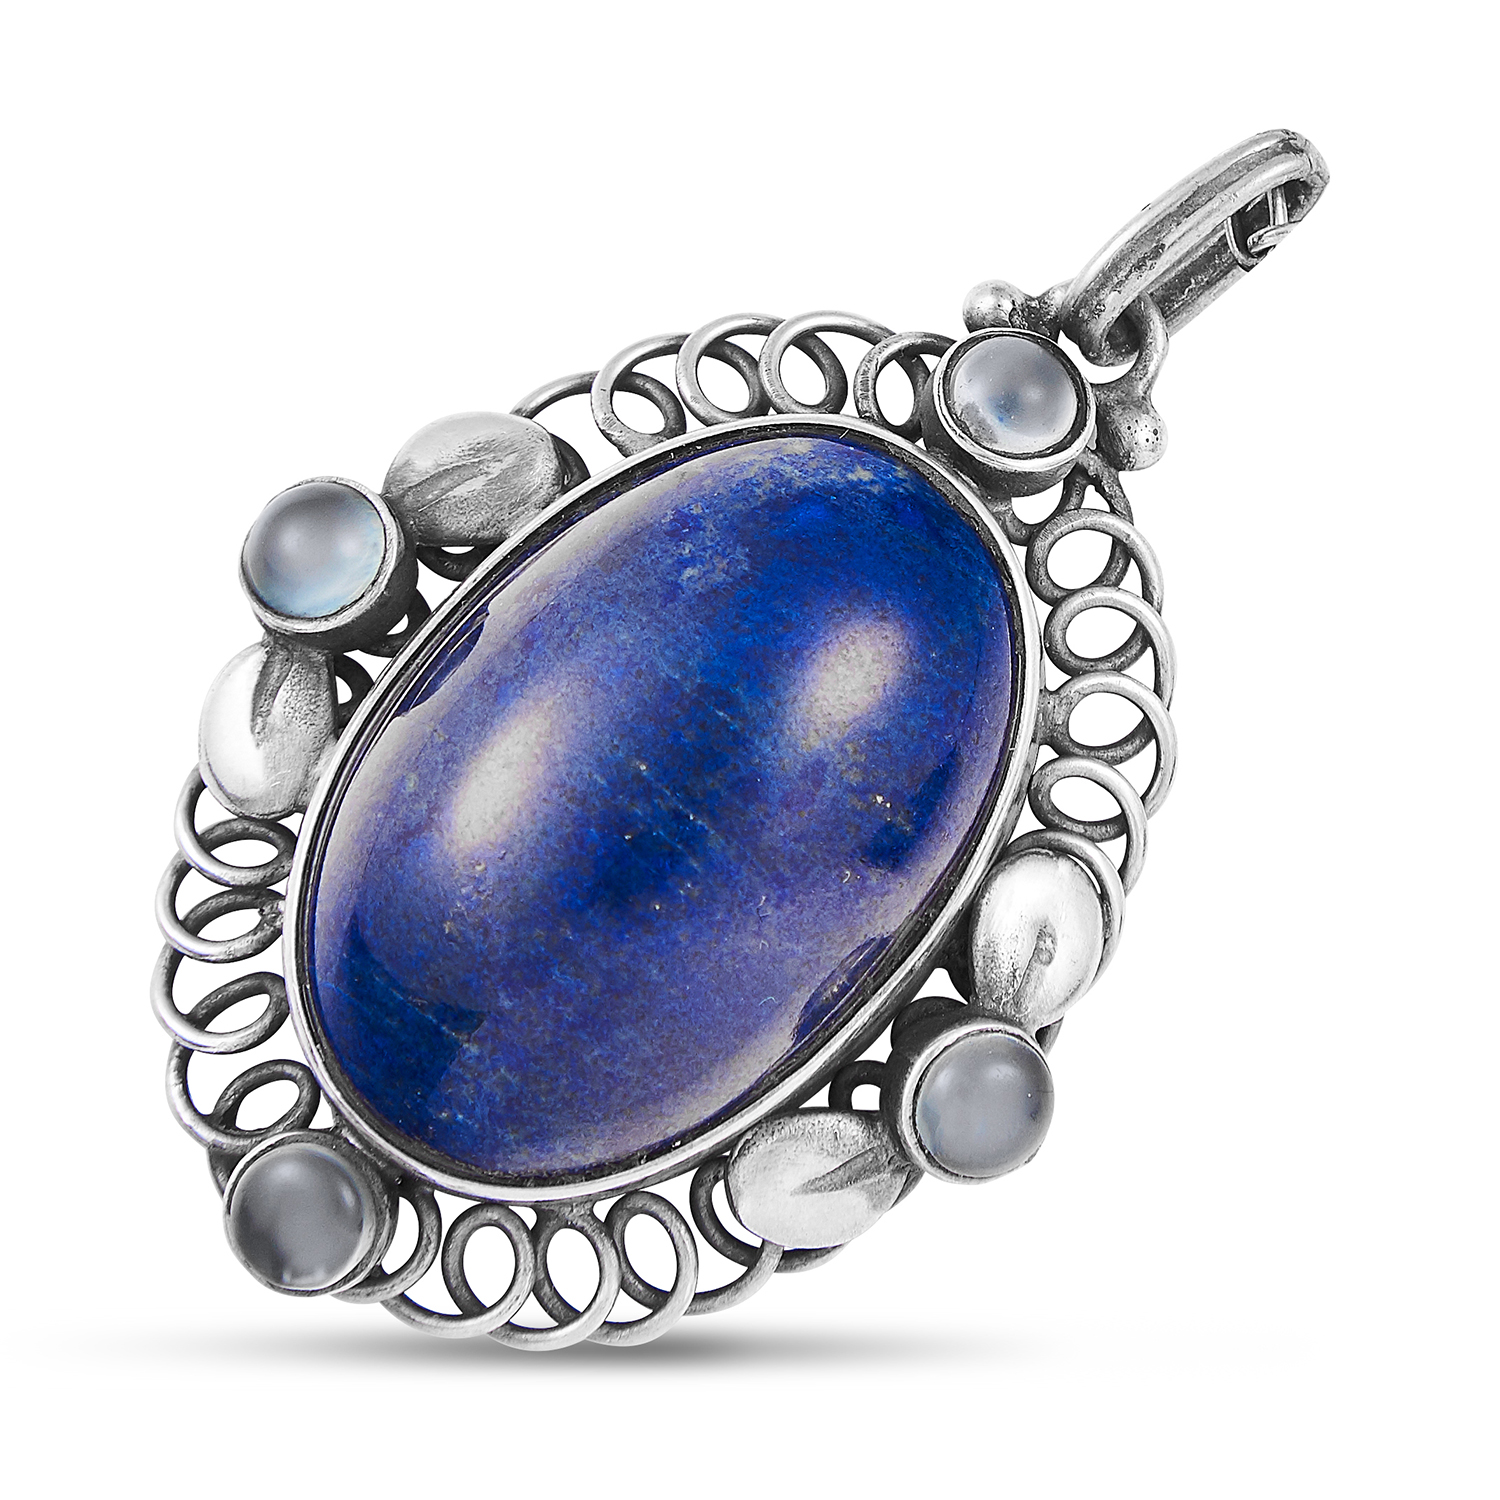 LAPIS AND LAZULI AND MOONSTONE PENDANT, GEORG JENSEN in sterling silver, set with a cabochon lapis